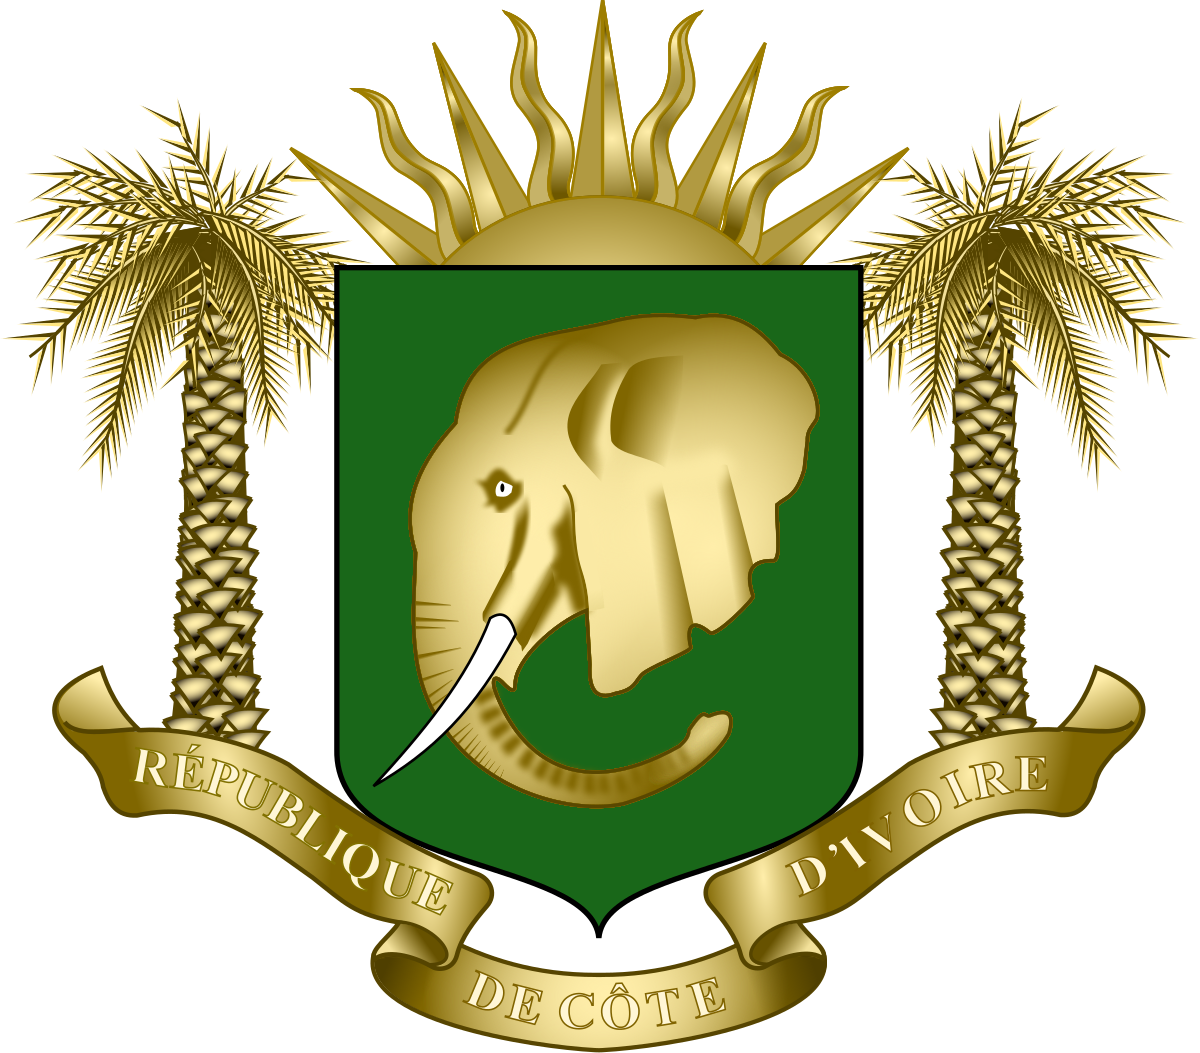 Government clipart military spending. Armed forces of the